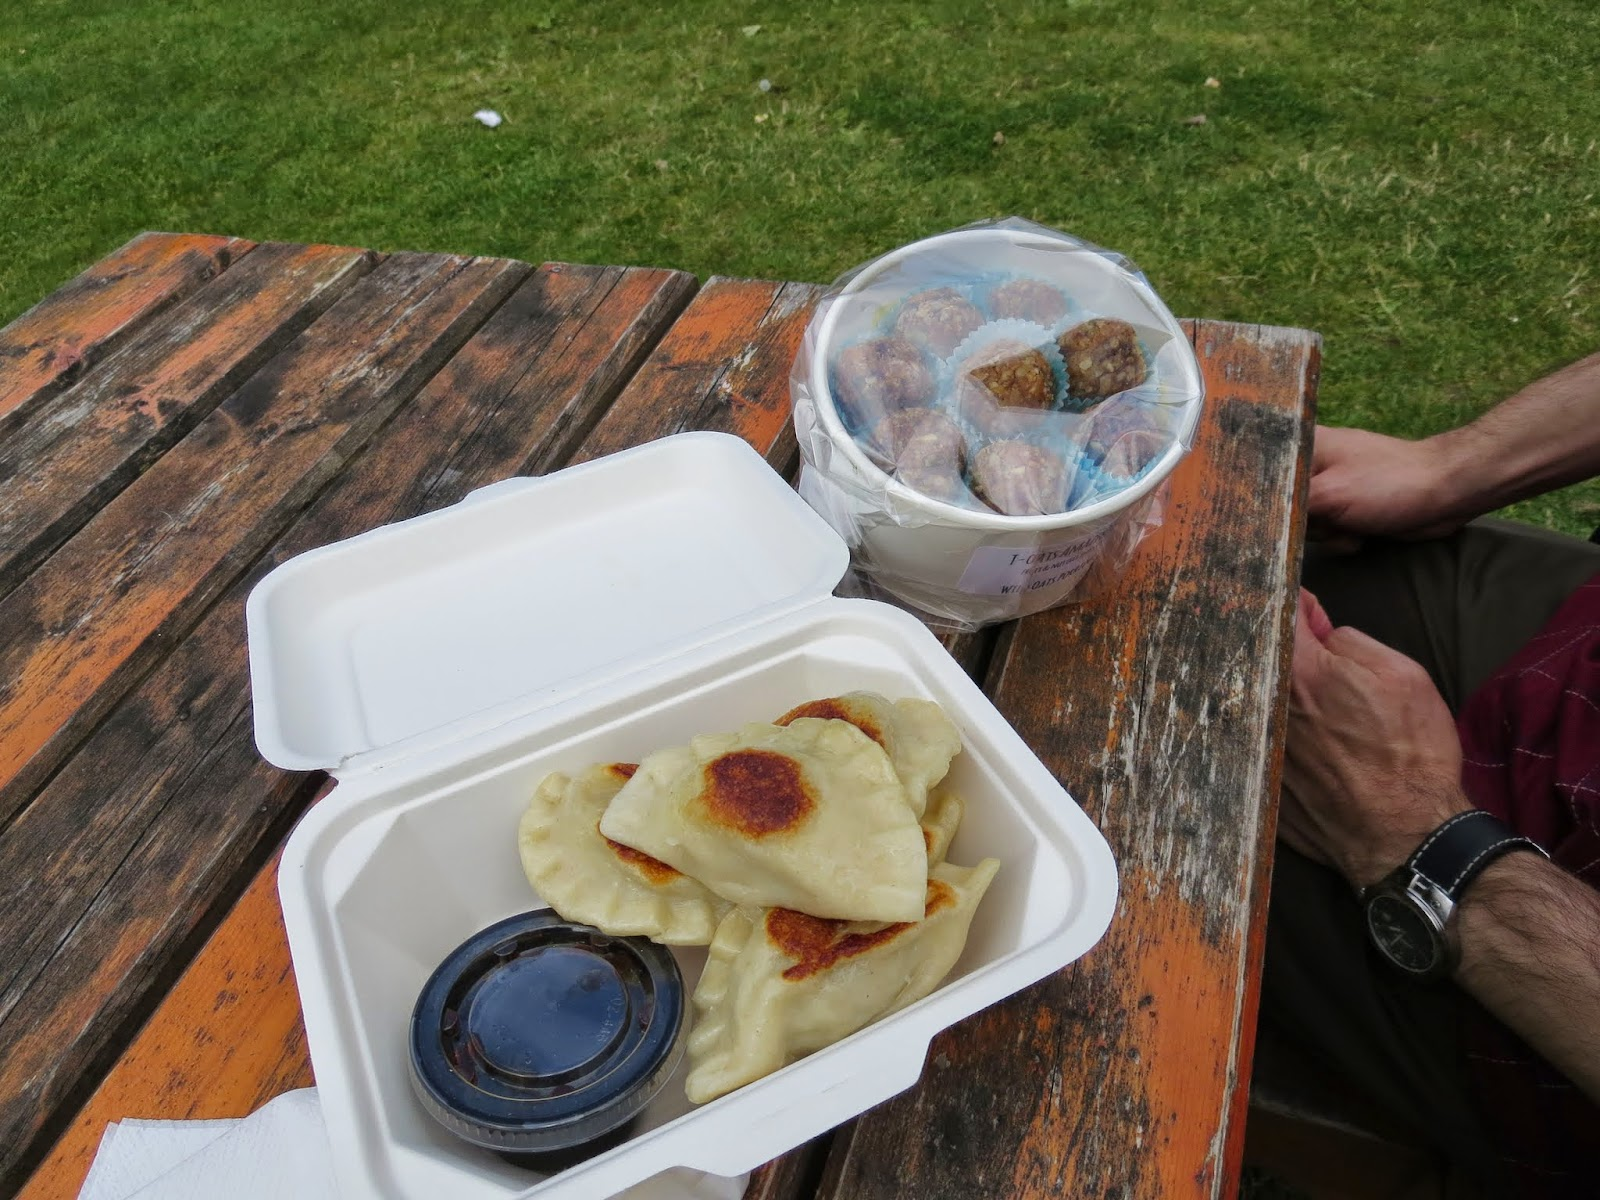 Pierogis and Amaze-balls at the Marlay Park food market in Dublin